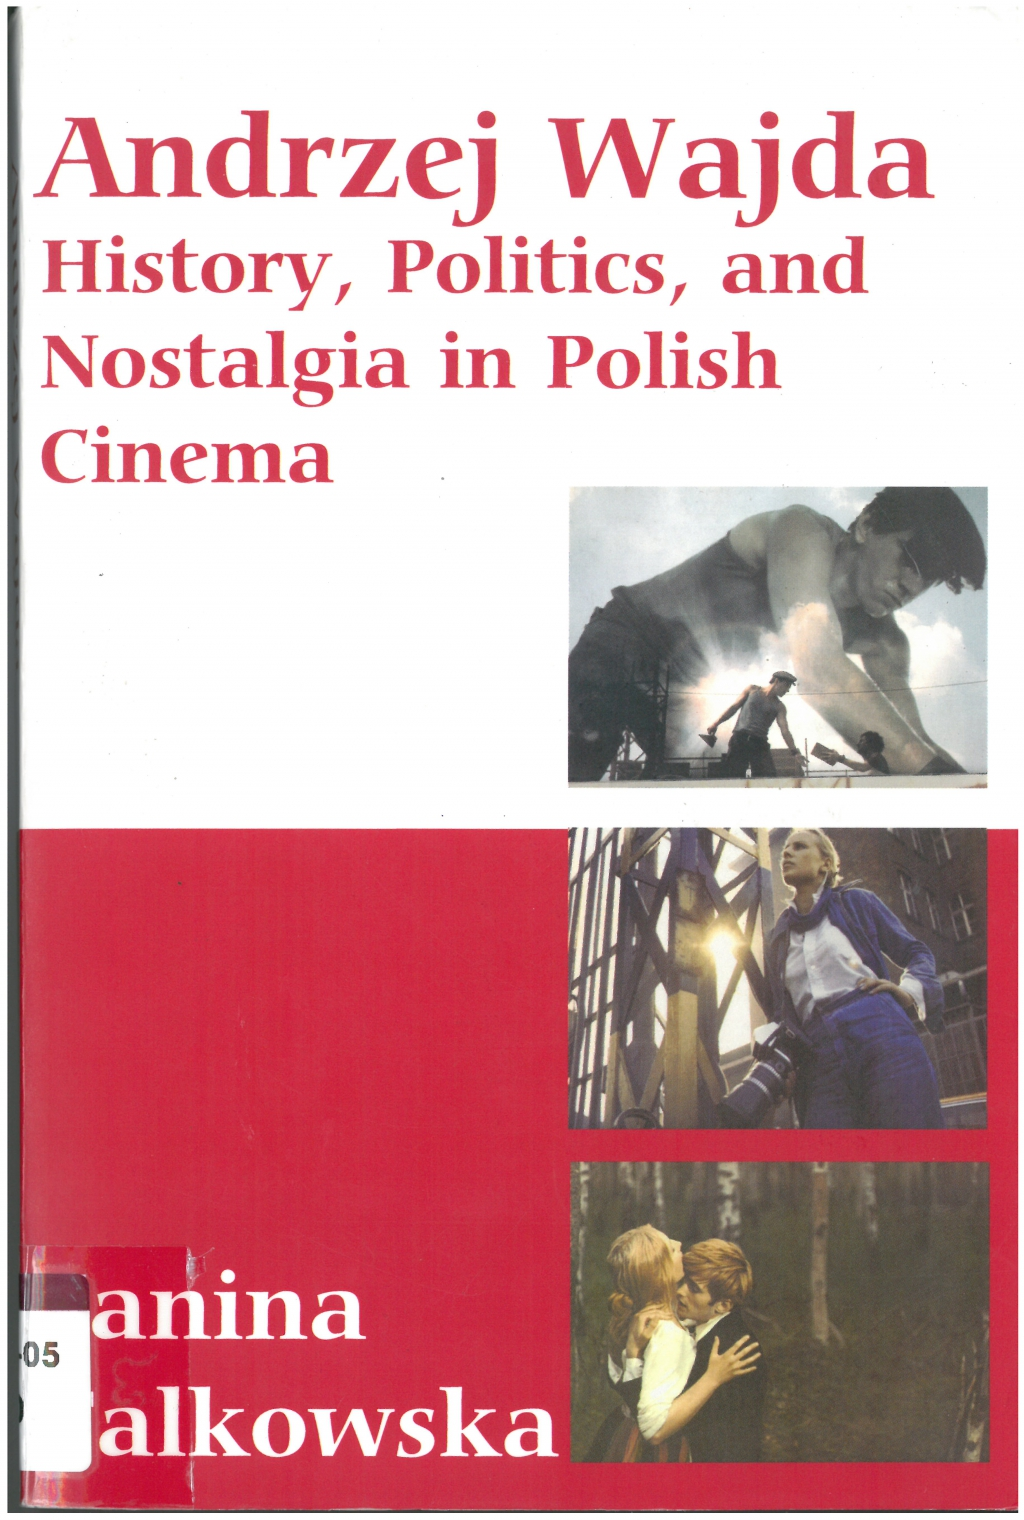 Falkowska, Janina. Andrzej Wajda: history, politics, and nostalgia in Polish cinema.  New York : Berghahn Books, 2007 - viii, 340 p. ISBN 9781845455088